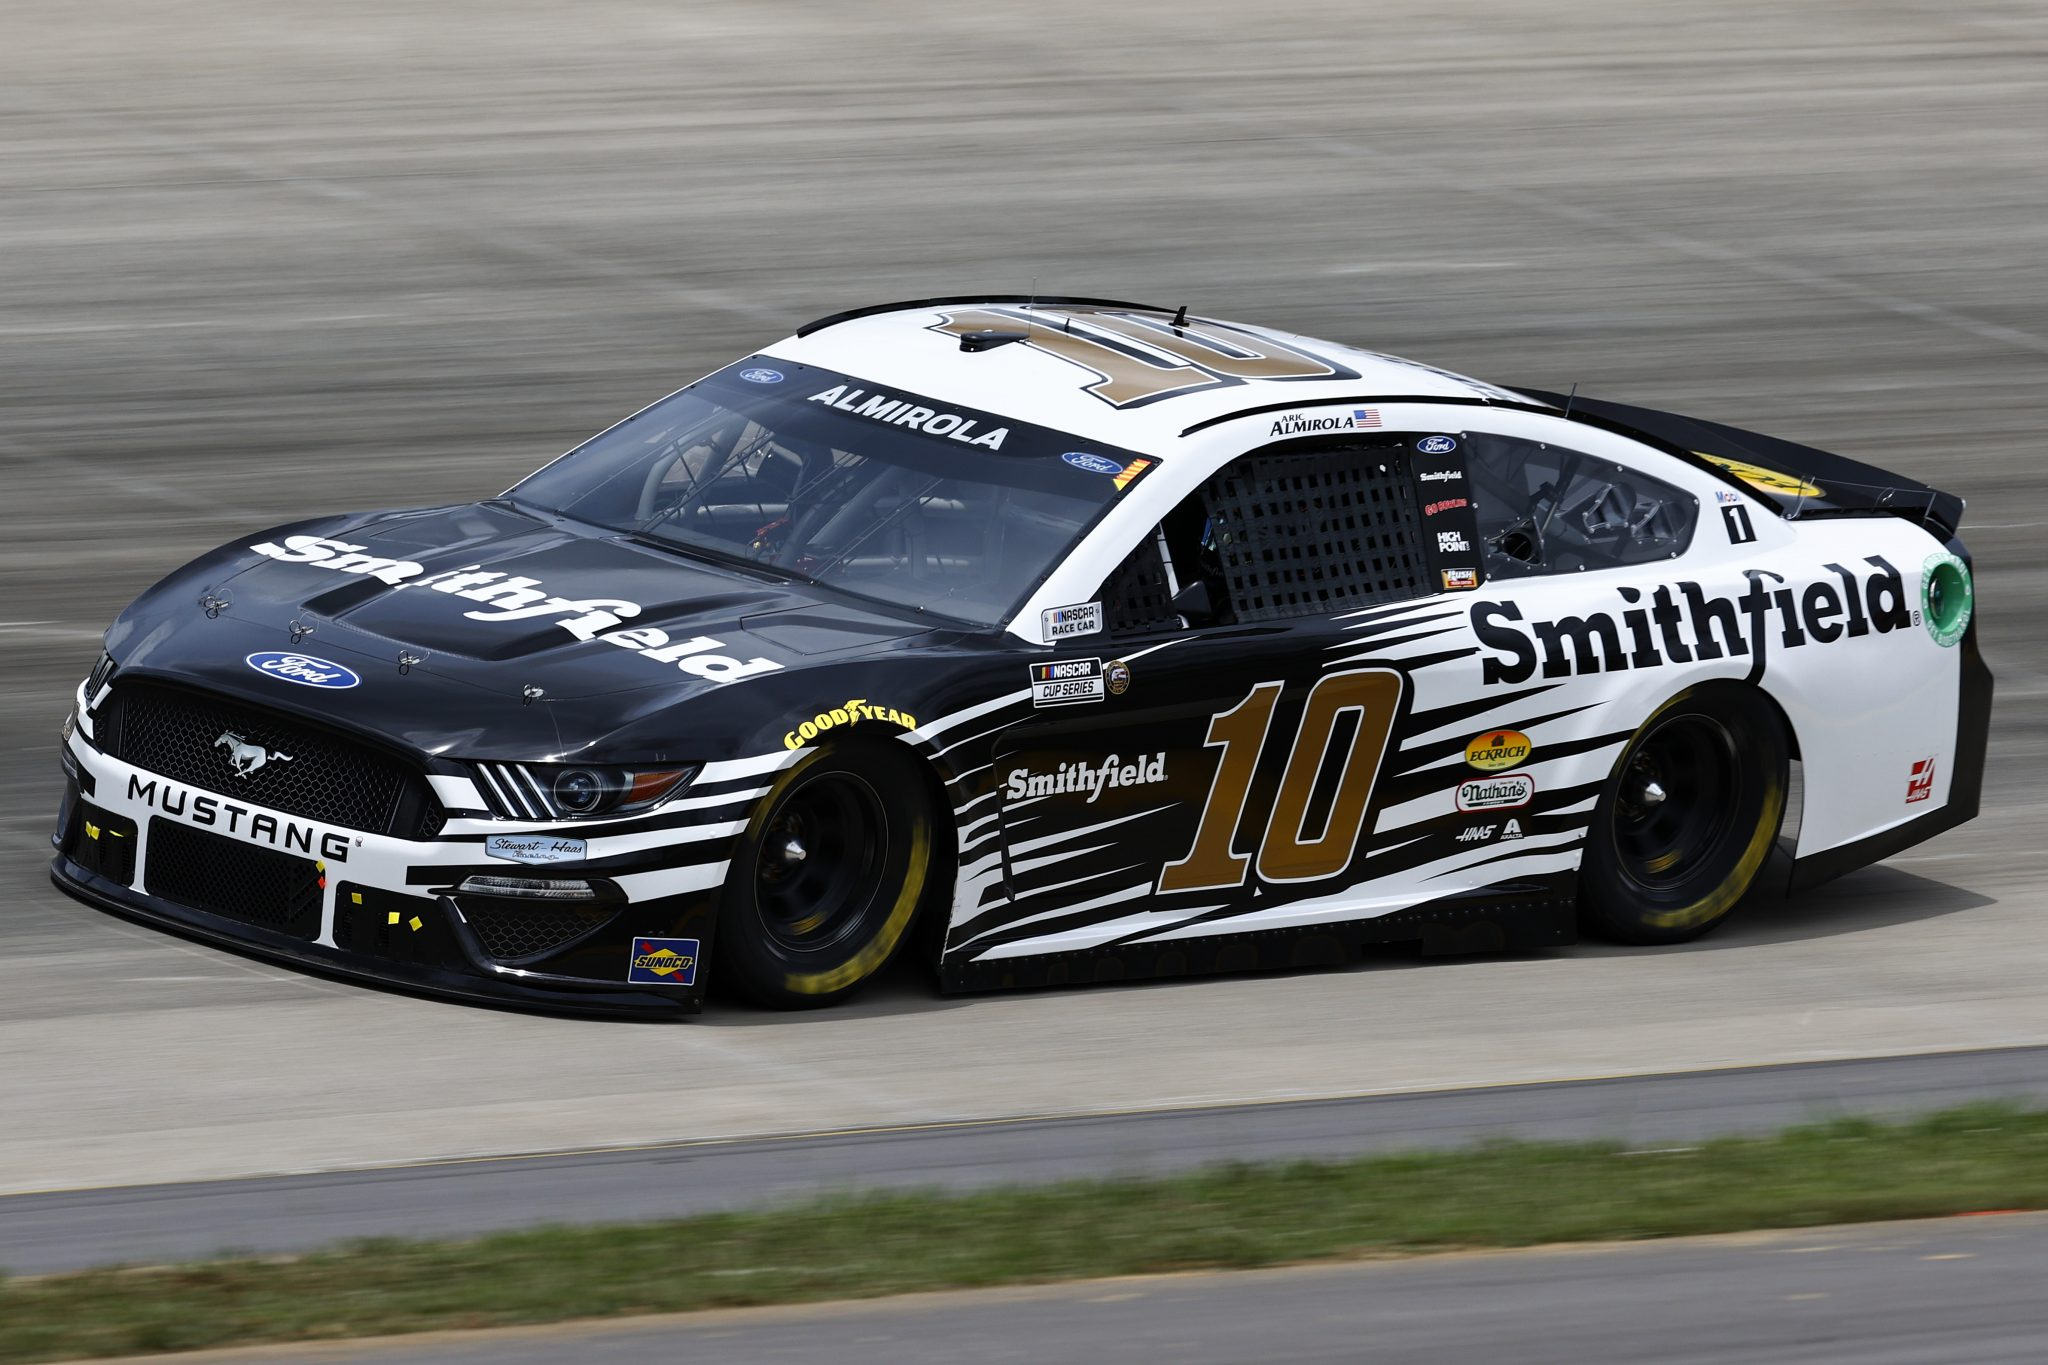 LEBANON, TENNESSEE - JUNE 19: Aric Almirola, driver of the #10 Smithfield Ford, drives during practice for the NASCAR Cup Series Ally 400 at Nashville Superspeedway on June 19, 2021 in Lebanon, Tennessee. (Photo by Jared C. Tilton/Getty Images)   Getty Images